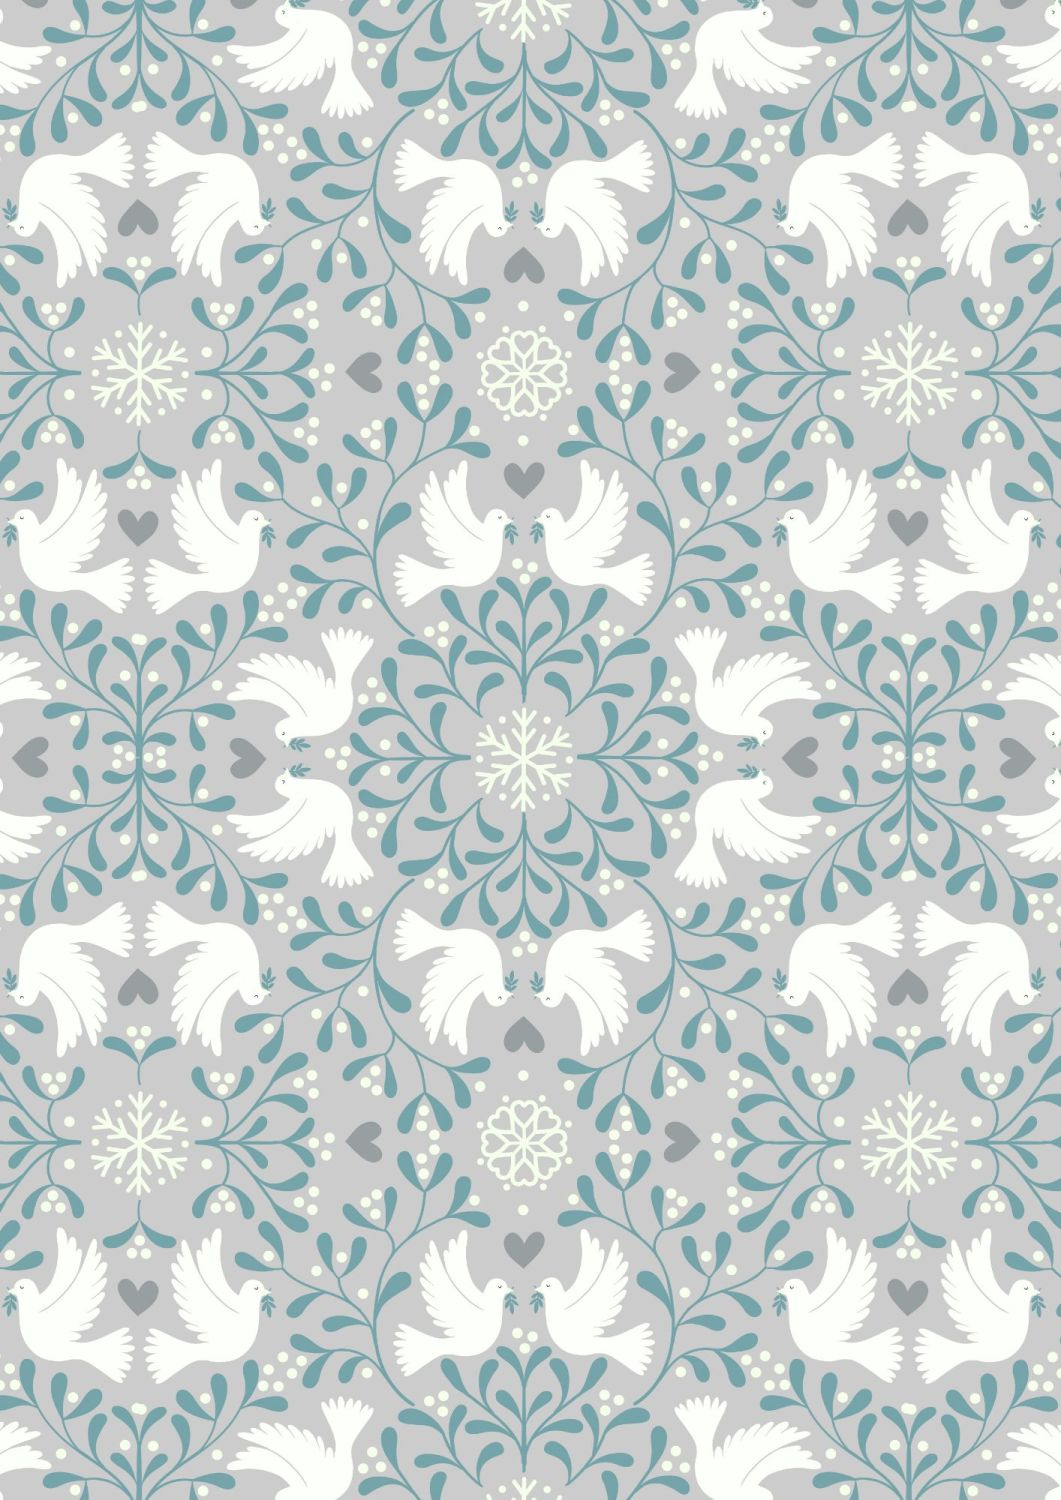 Lewis and Irene -  Hygge Glow - Scandi Dove on Silver  -Glow in the Dark